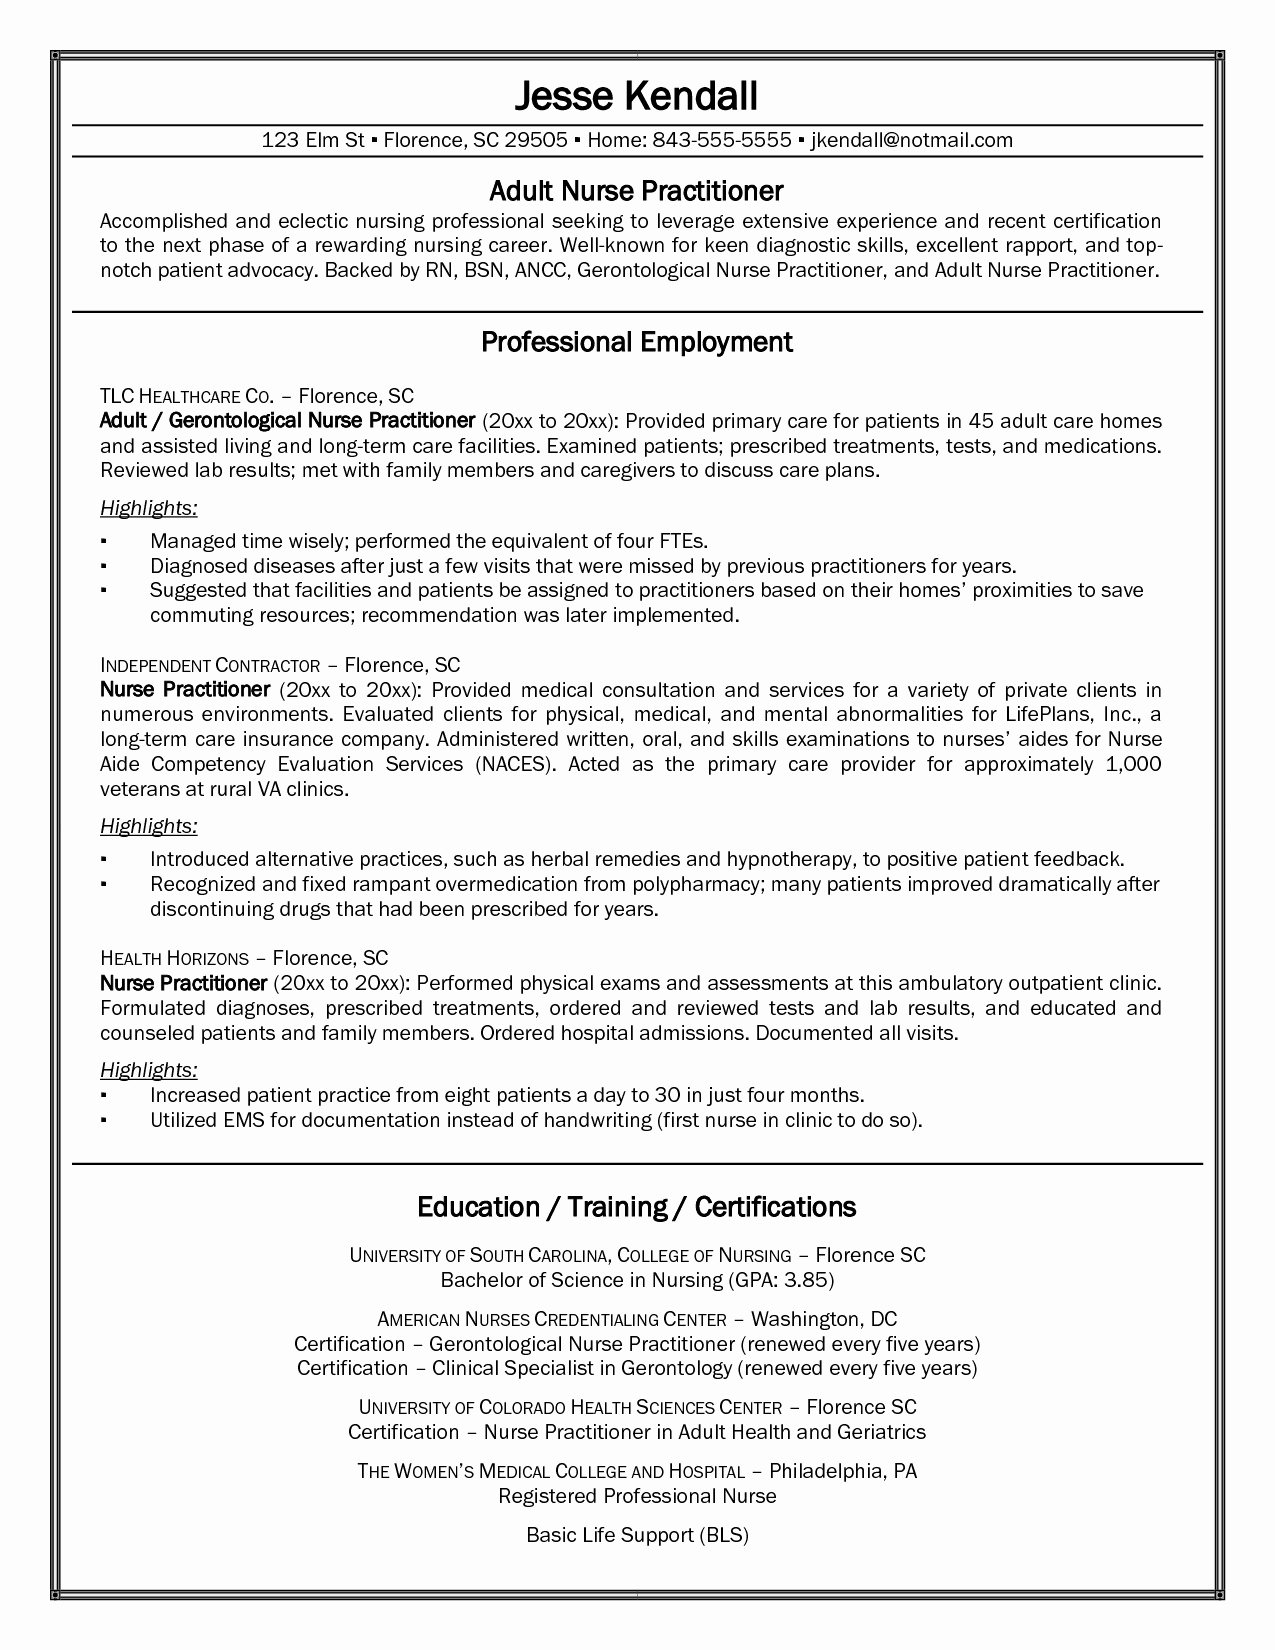 Nurse Practitioner Cv Template Beautiful Cv Examples Nurse Practitioner Cv